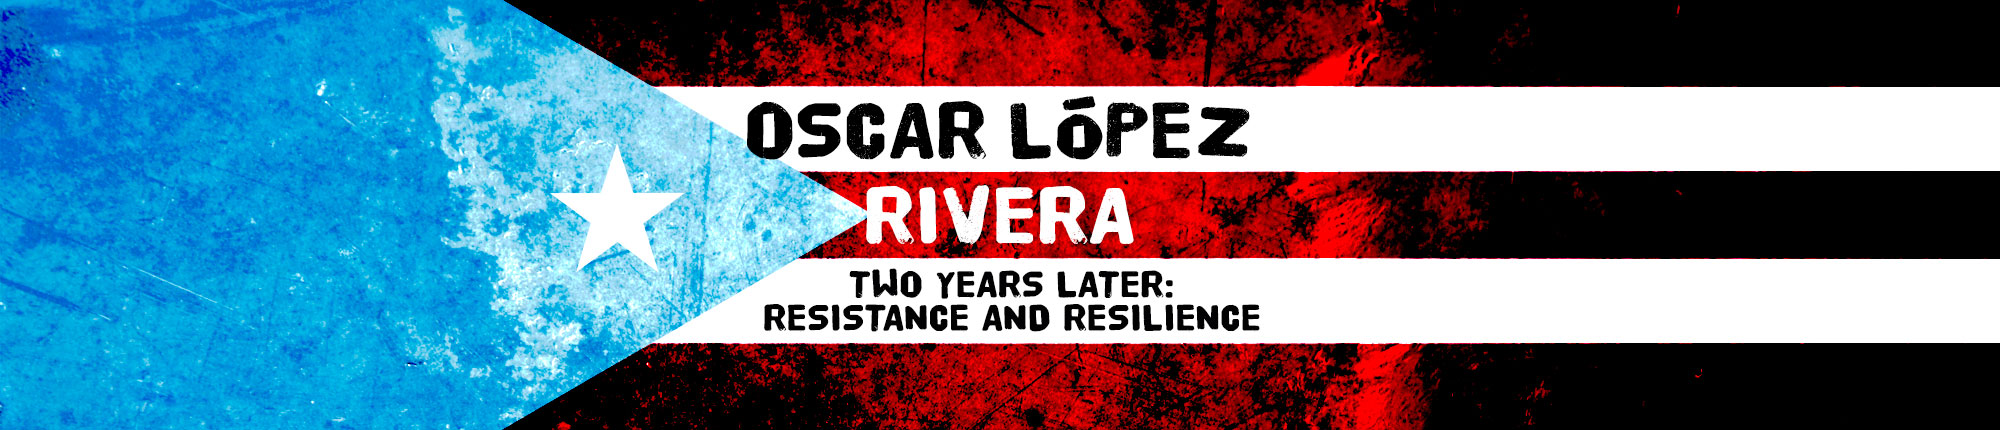 Oscar López Rivera: Two Years Later, Resistance and Resilience